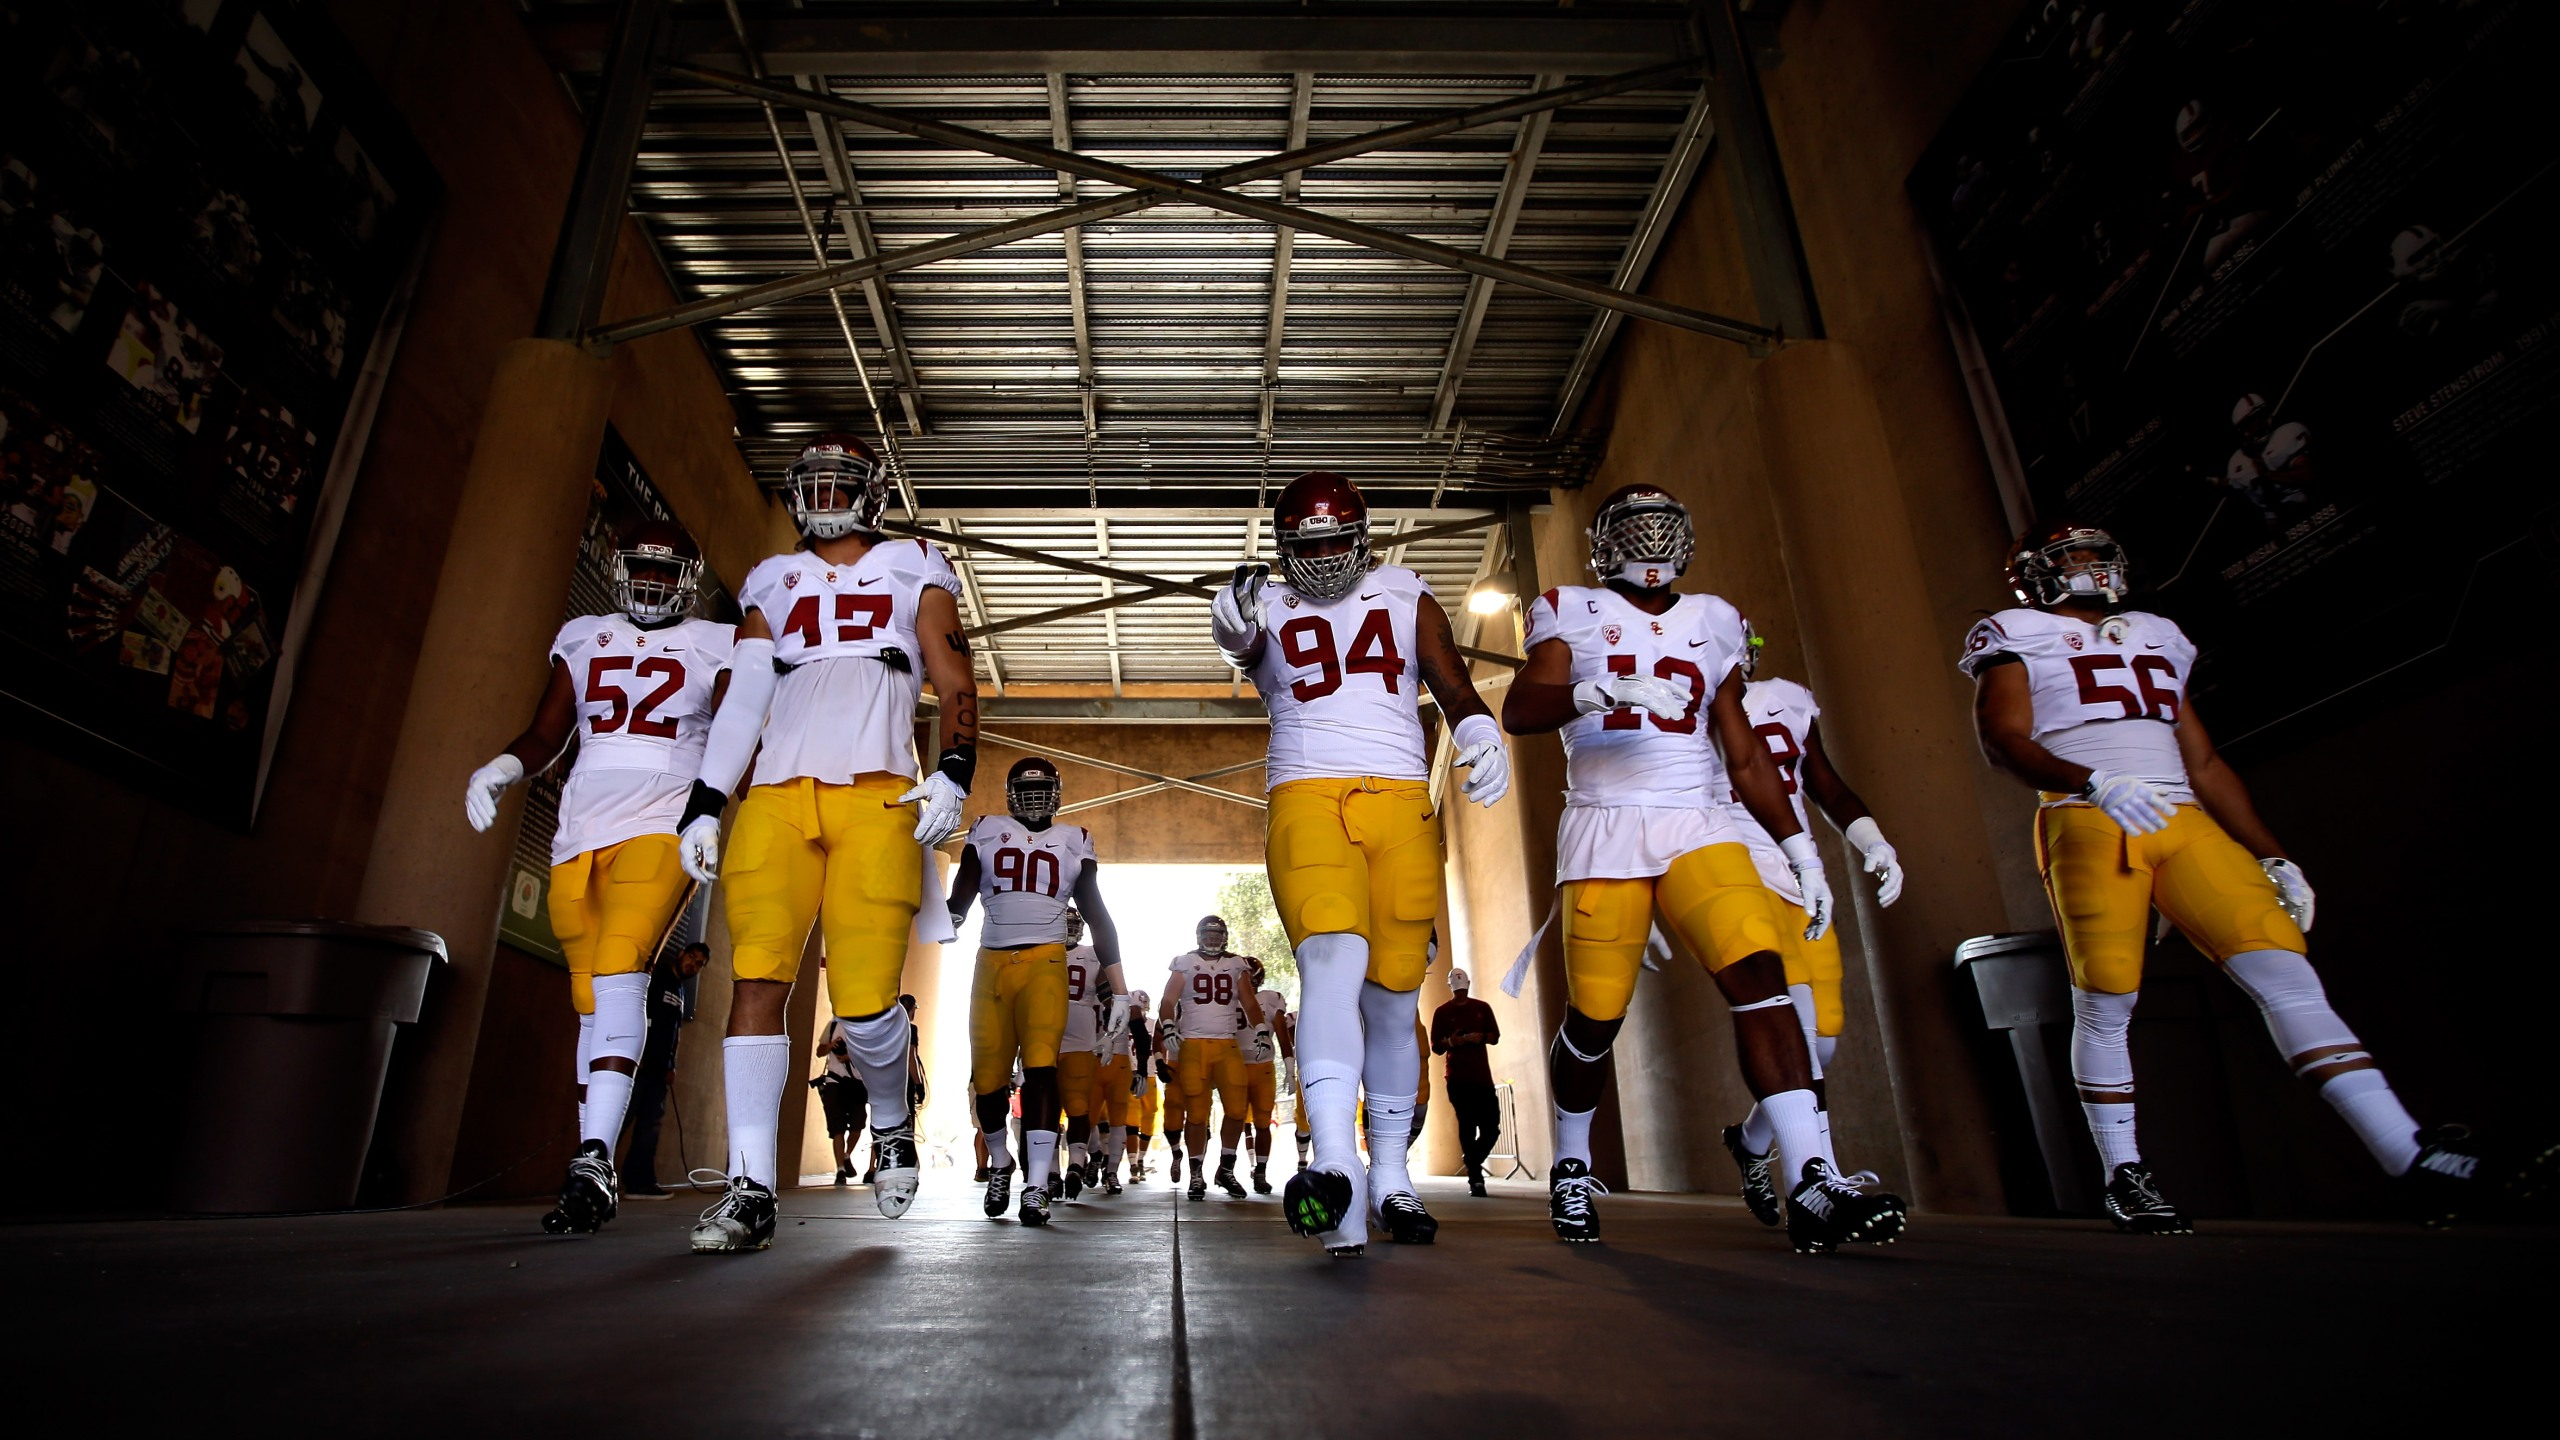 USC Trojans football players walk down the tunnel ahead of a game against the Stanford Cardinal in Palo Alto on Sept. 6, 2014. (Credit: Ezra Shaw / Getty Images)